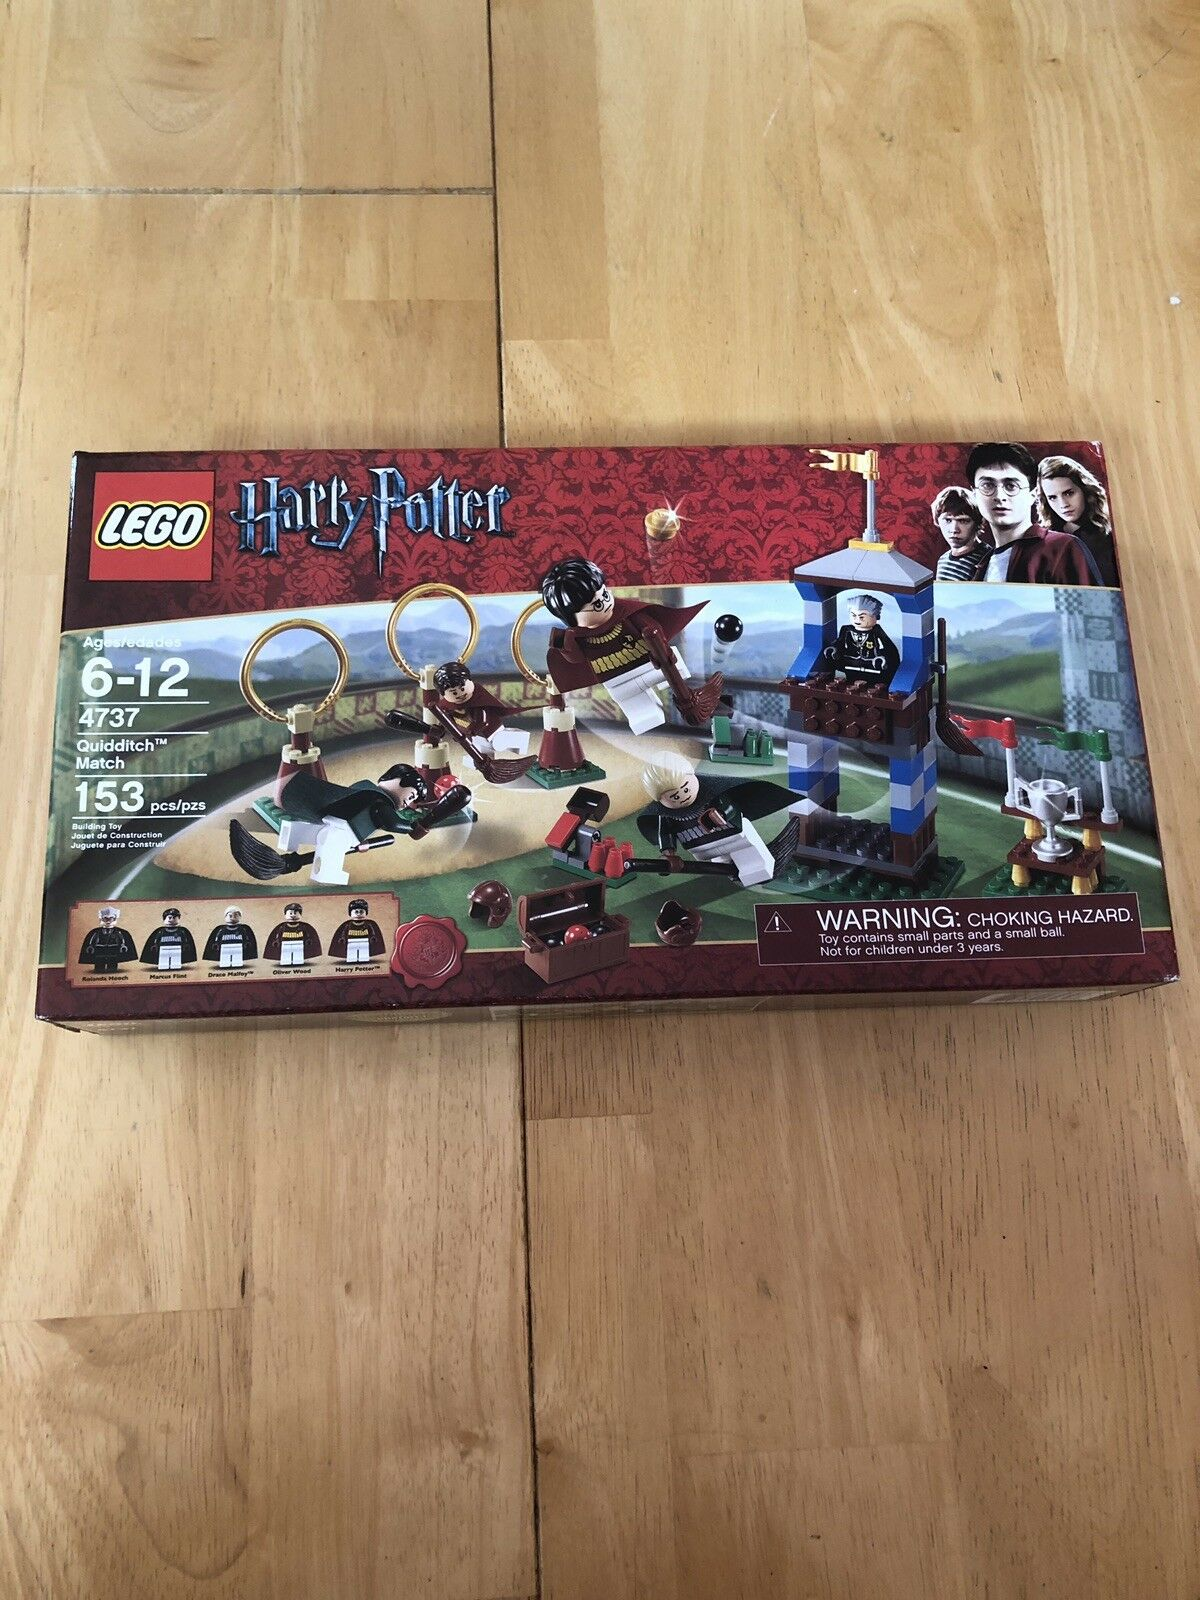 Lego 4737 Harry Potter Quidditch Match Madame Hooch ** Sealed Box **